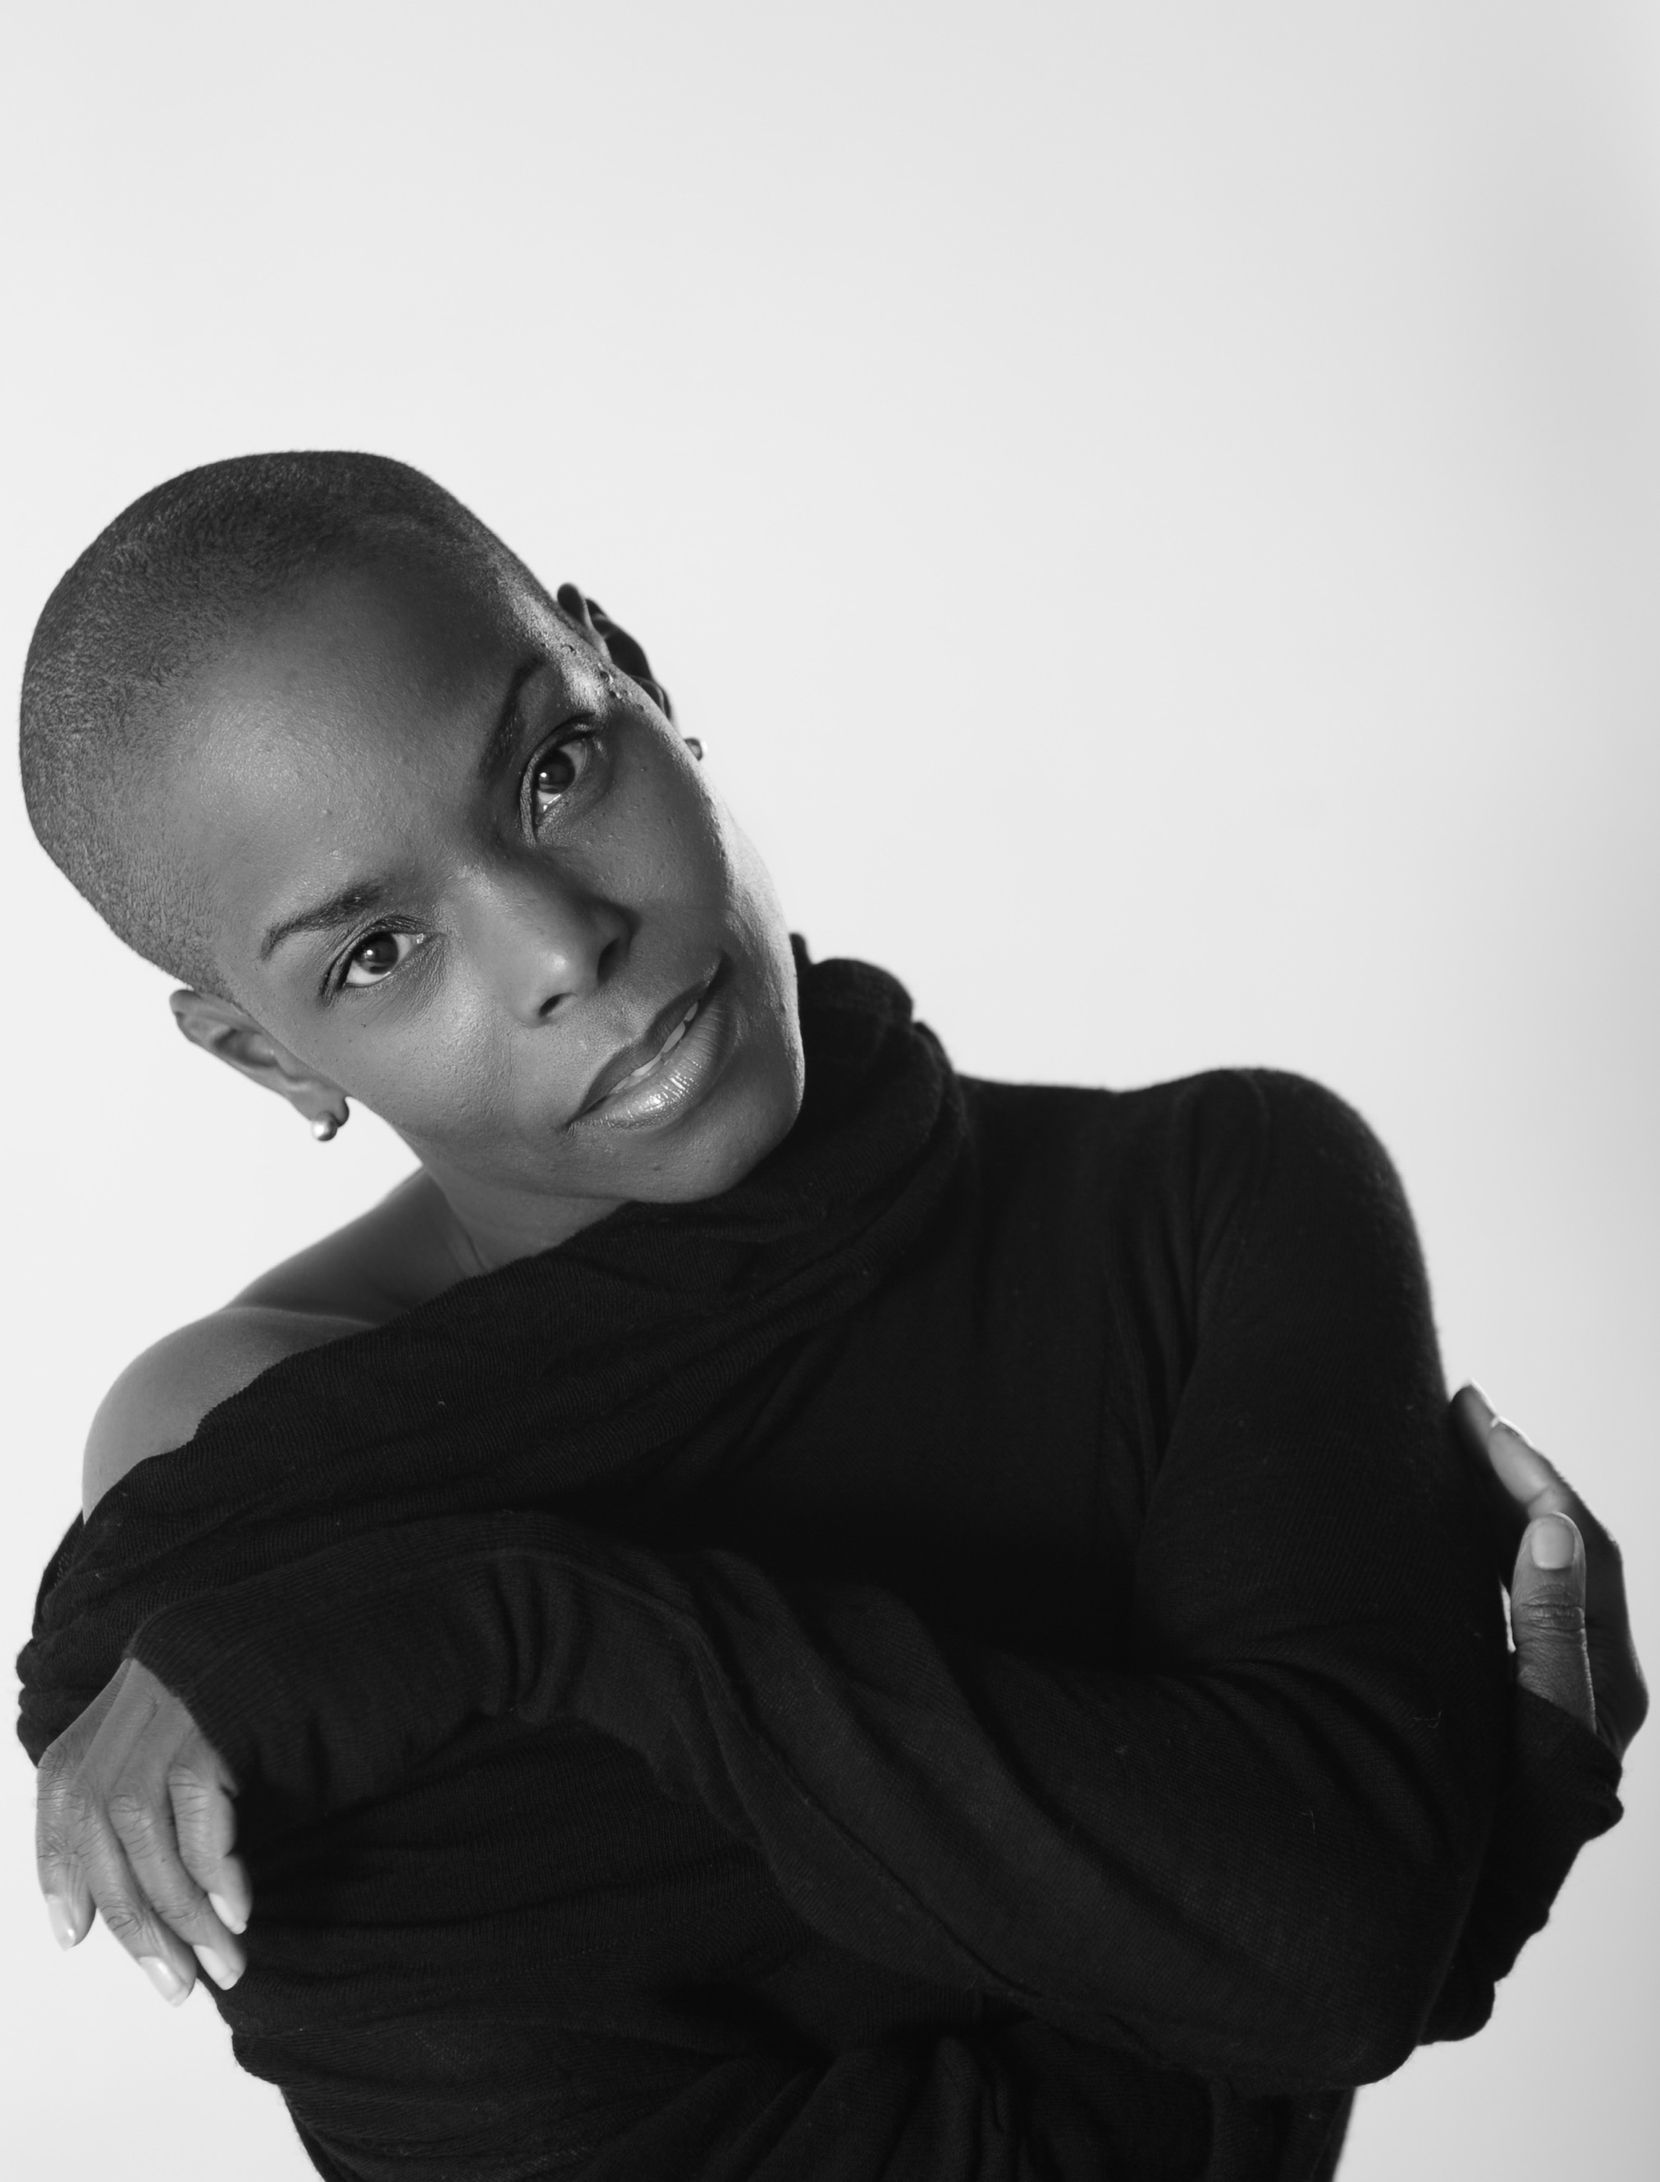 Influential dancer and choreographer Hope Boykin's 'On. Toward. Press' was performed by the Dallas Black Dance Theatre.